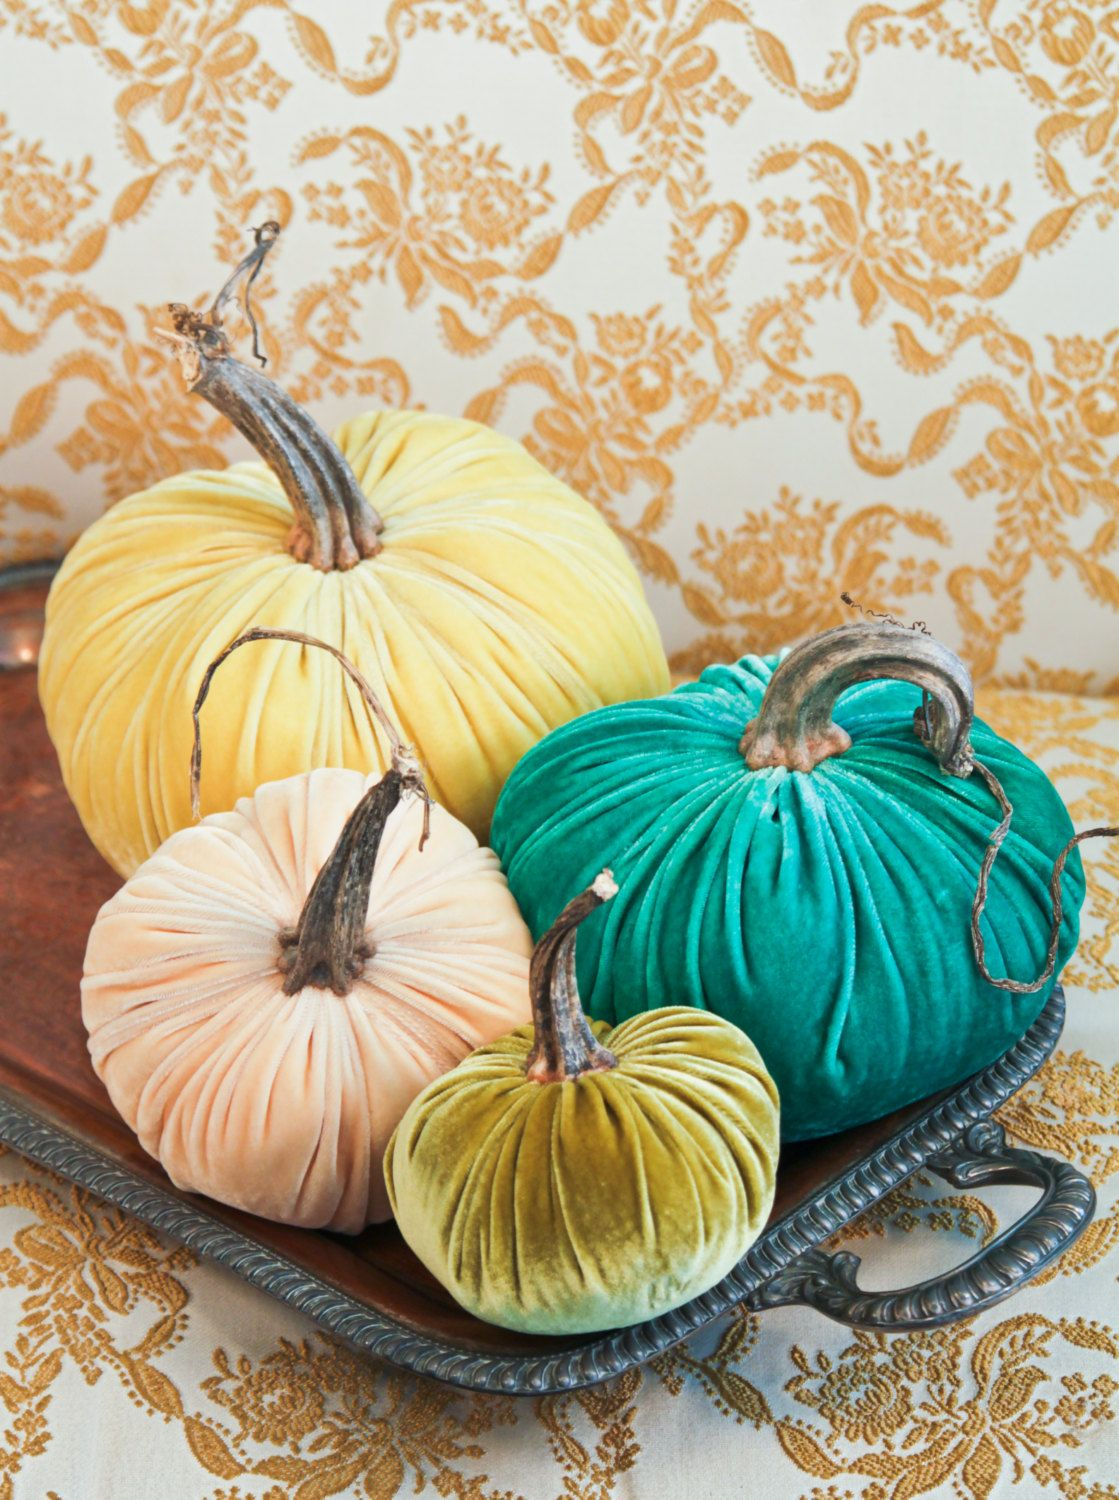 Four Coastal Confection Velvet Pumpkins with Real Pumpkin Stems by TheVelvetWindow on Etsy